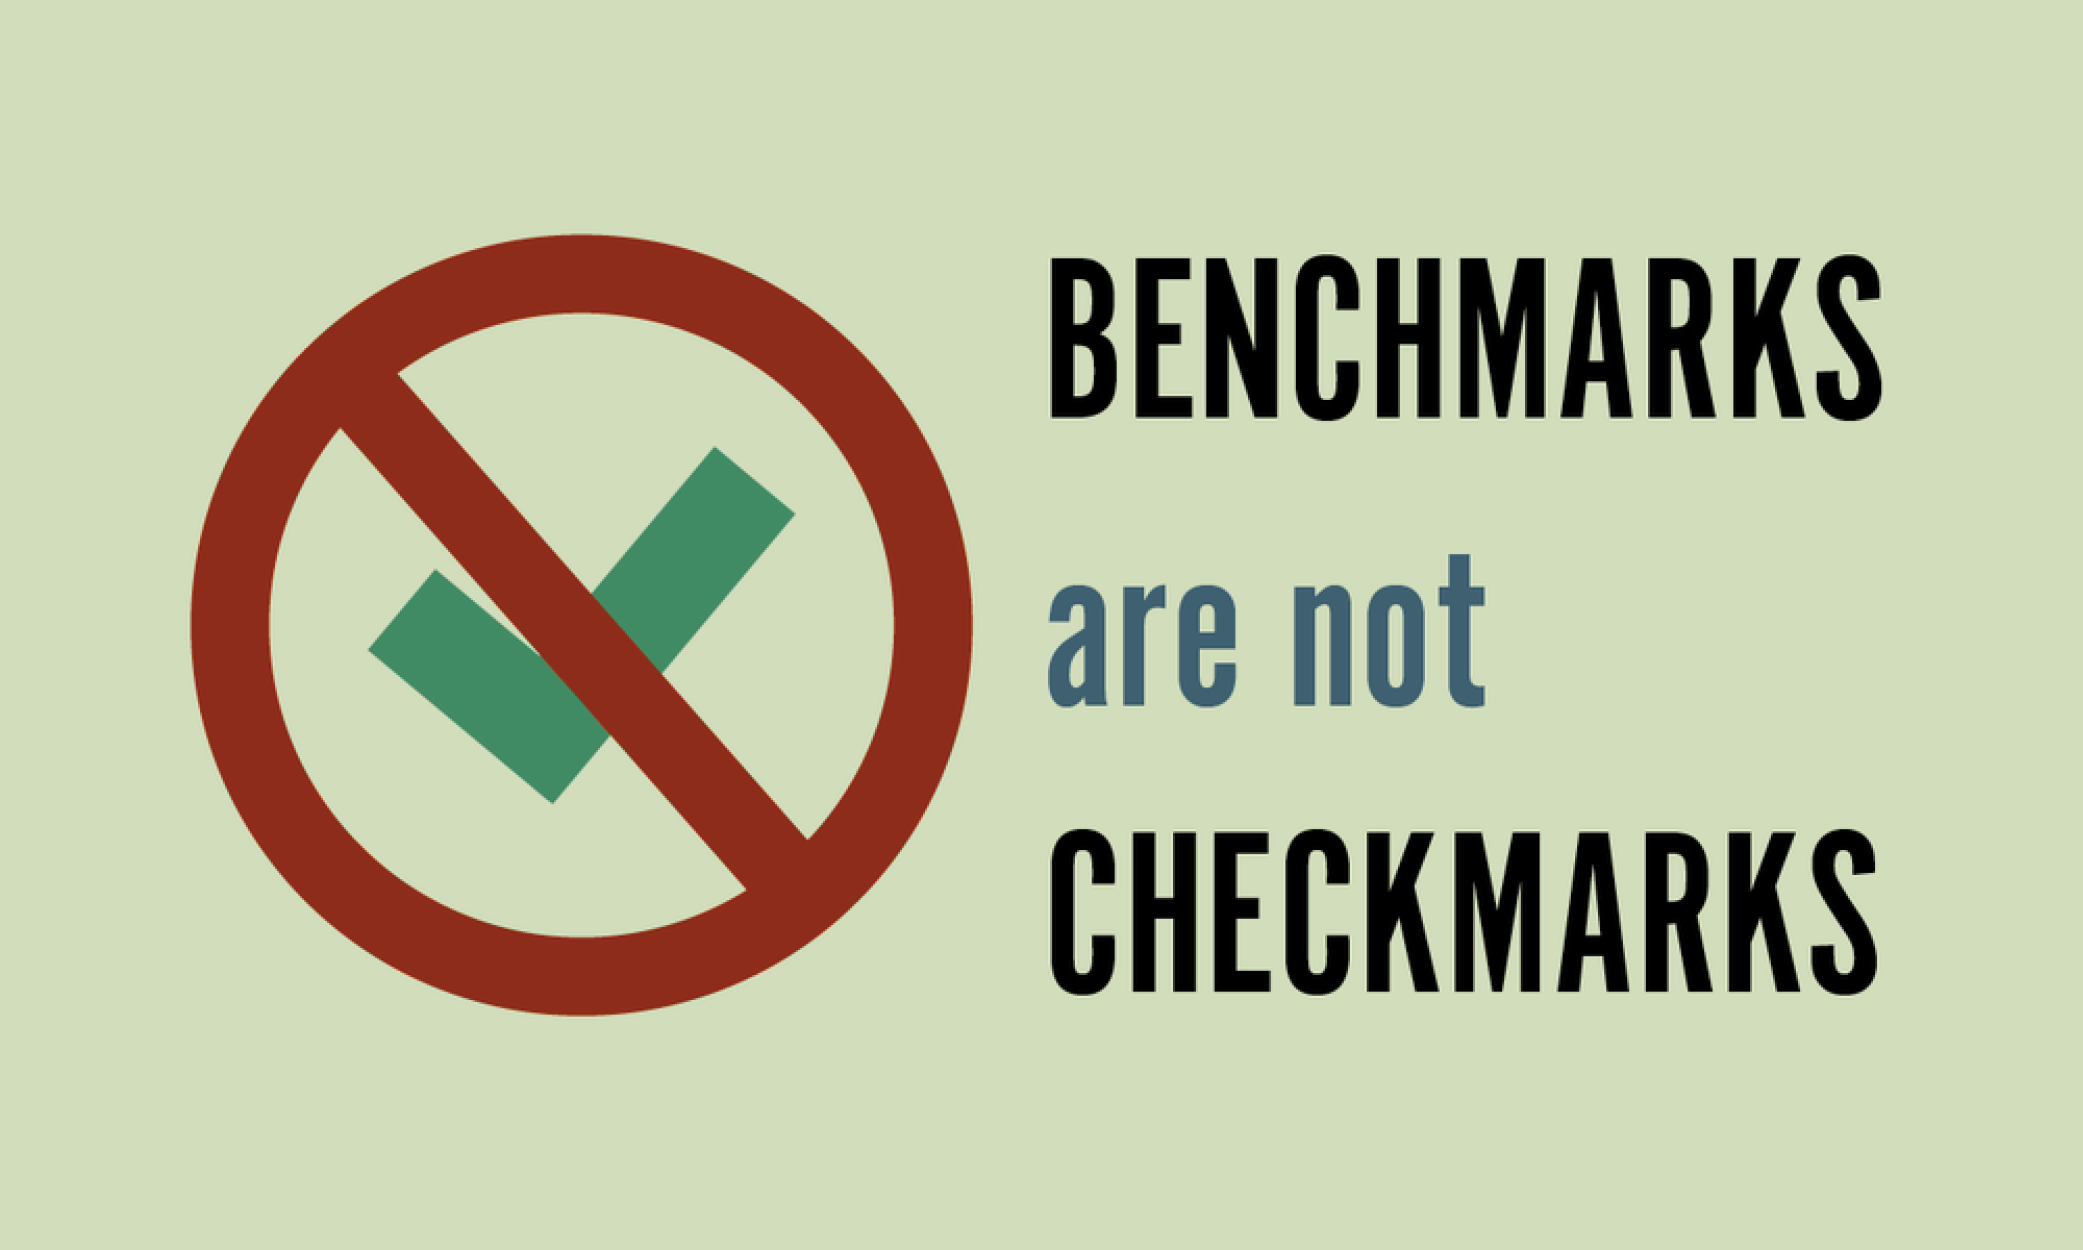 benchmarks-are-not-checkmarks.png